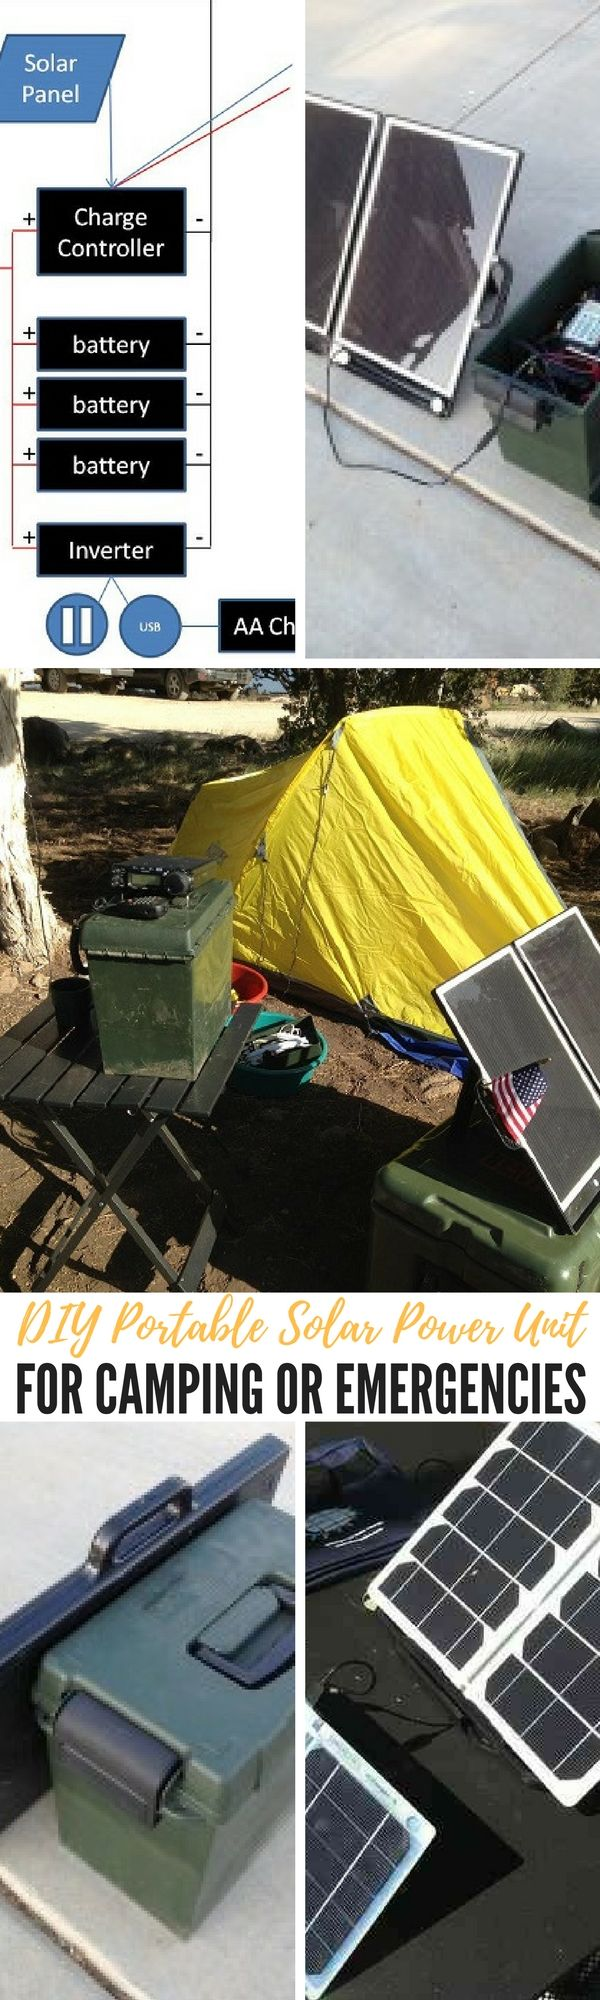 DIY Portable Solar Power Unit For Camping Or Emergencies — Having electricity is a huge convenience, even if you're camping. Not only can it charge electronics you can use for critical equipment, it can make things more comfortable.